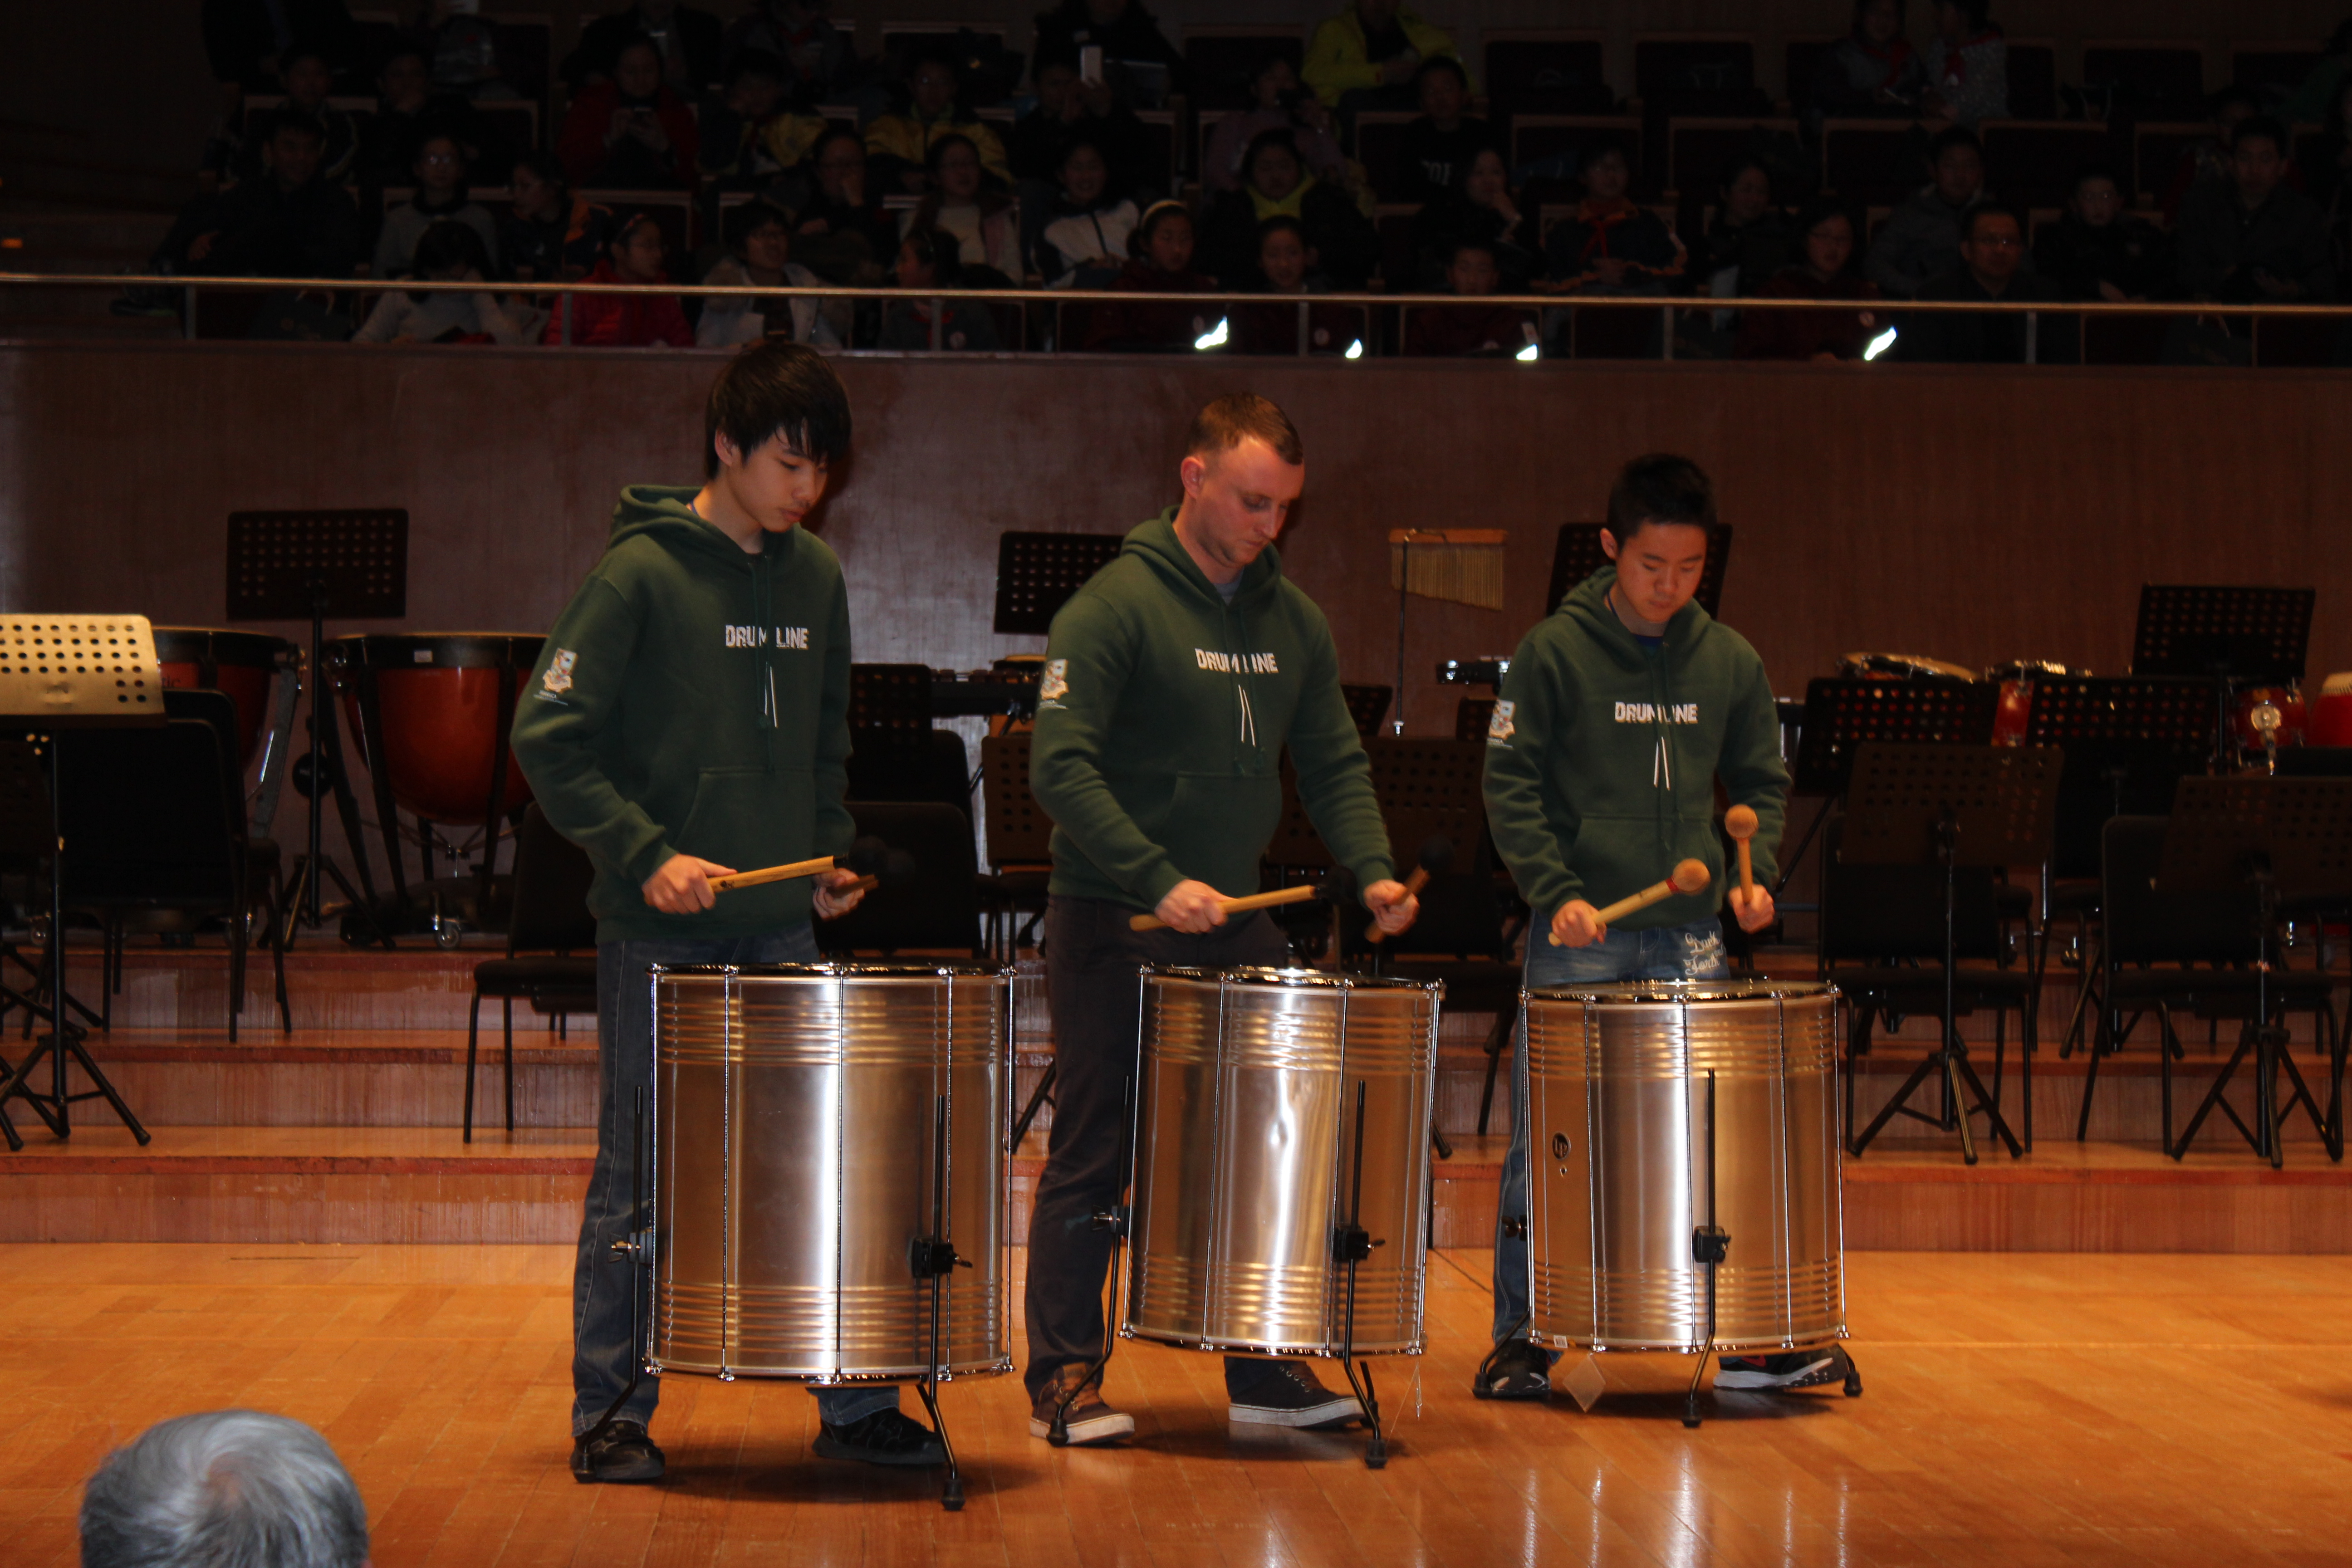 Drum Line at the Shanghai New Year International Festival